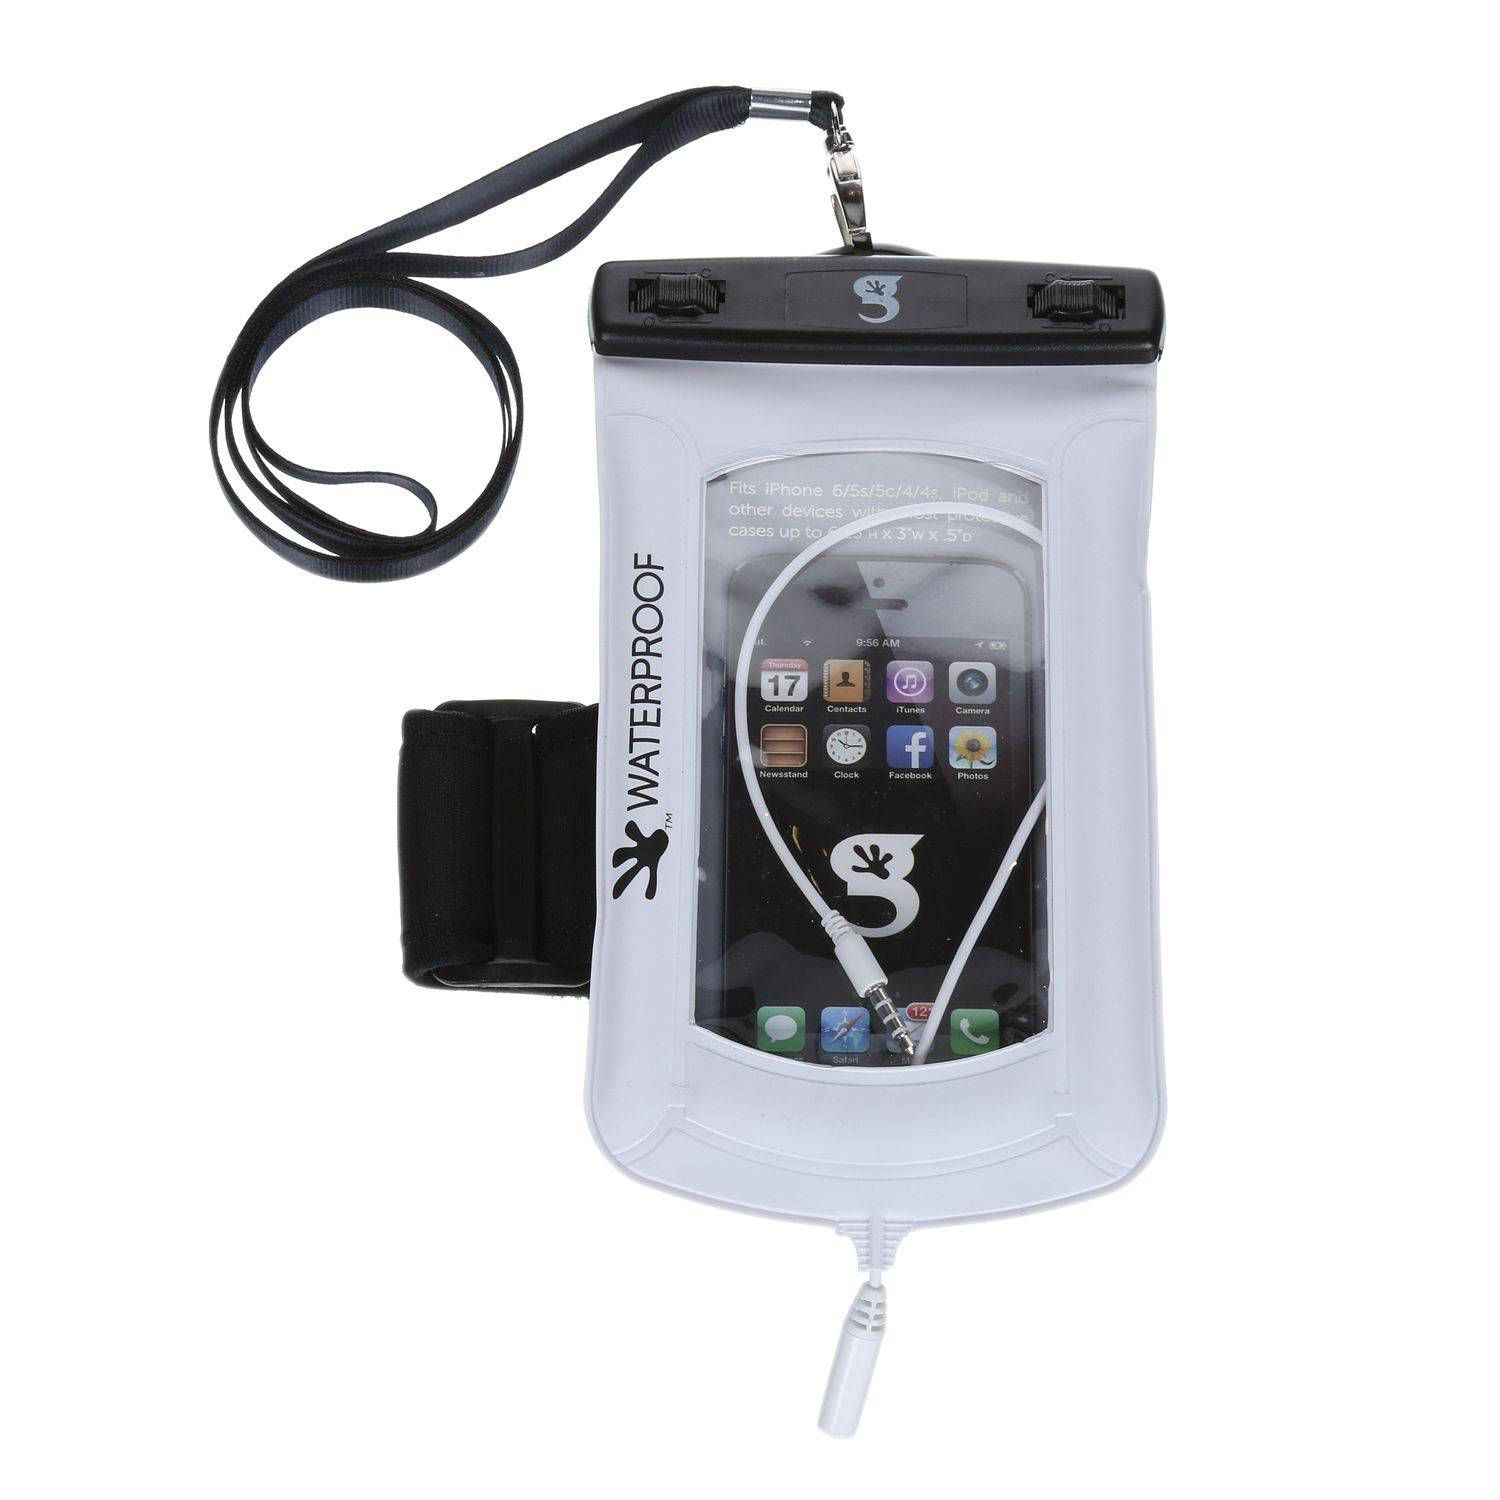 geckobrands Floatable Waterproof Phone Case with Audio Cord and Arm Band, White